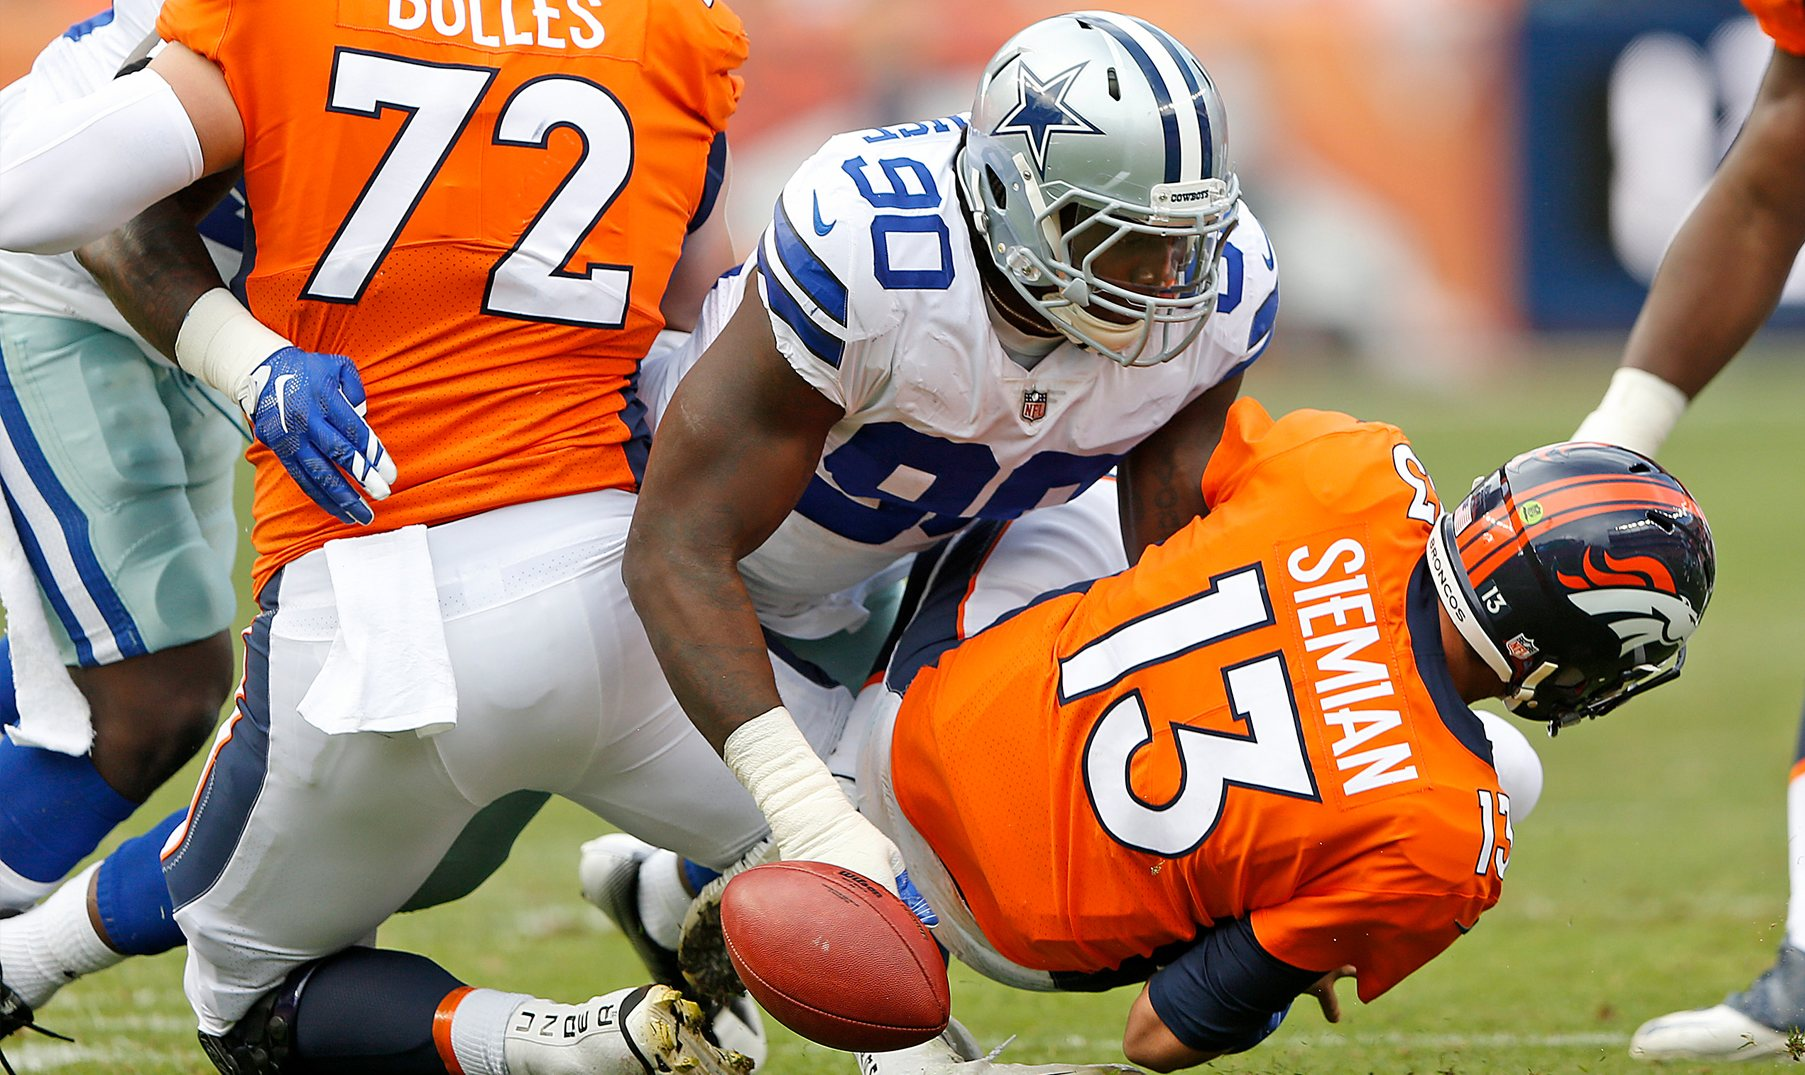 DeMarcus Lawrence, Broncos